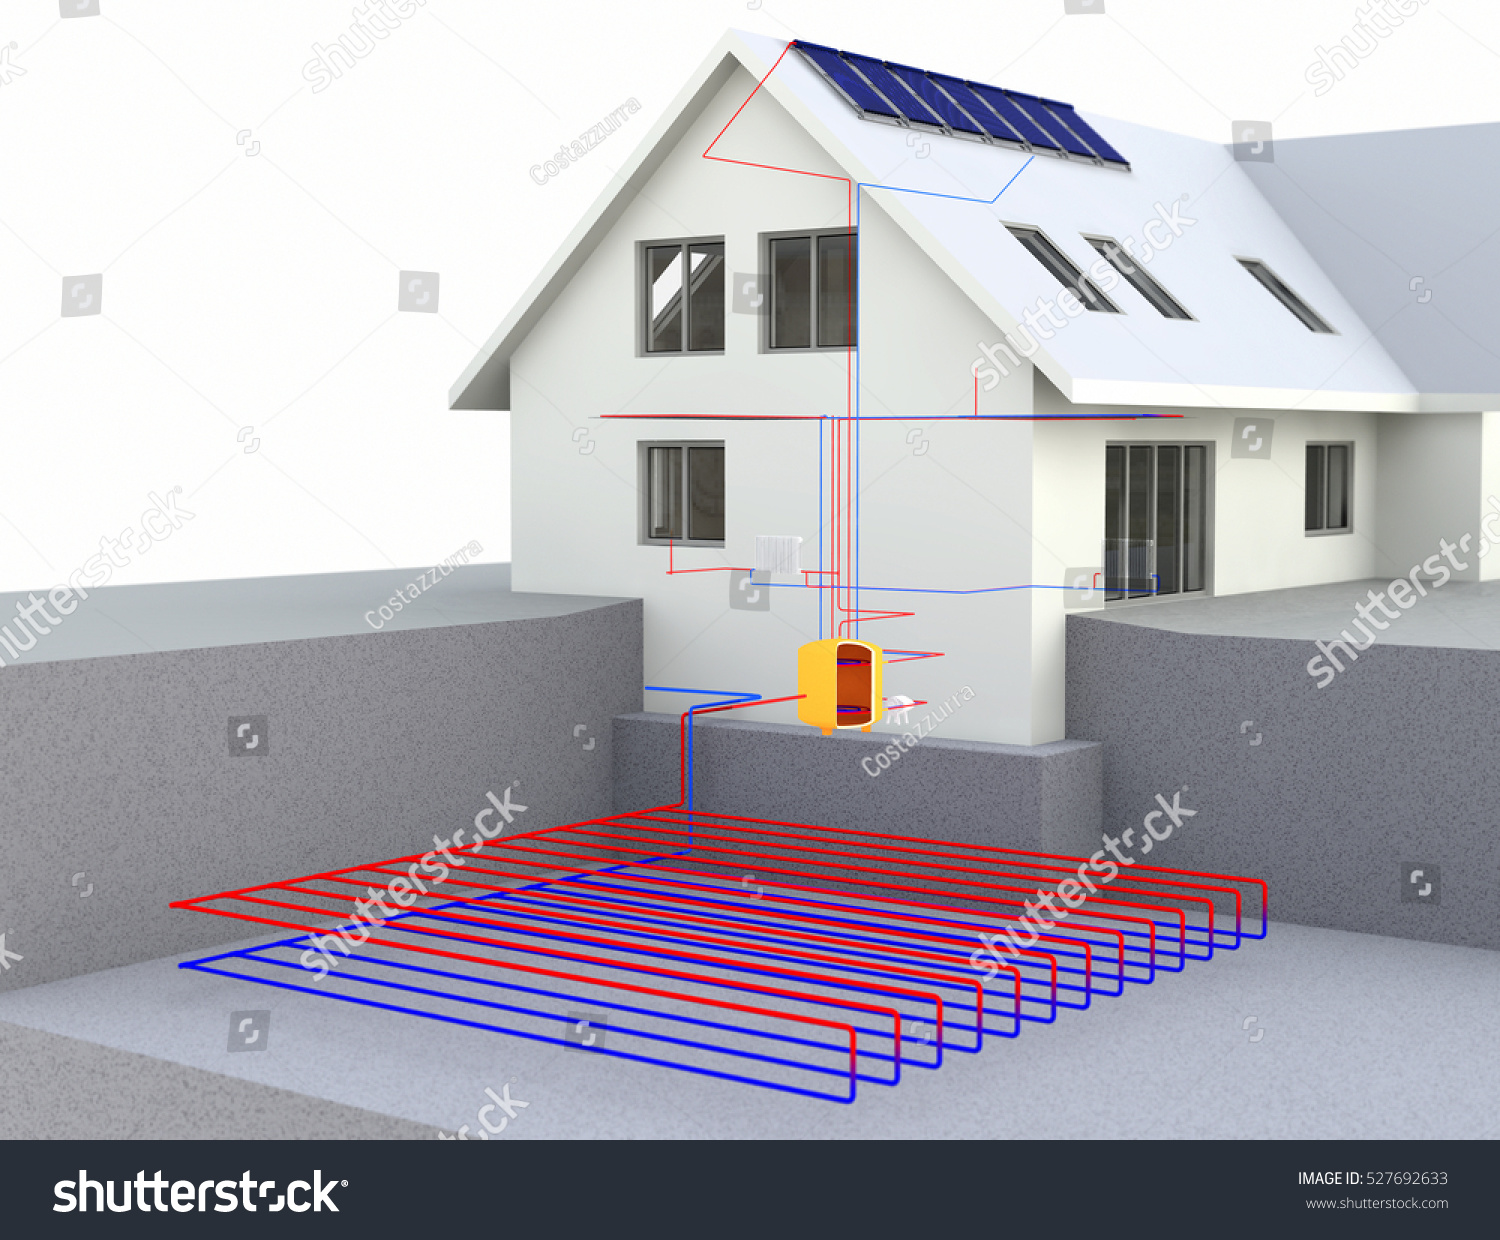 Geothermal power house solar panels geothermal stock for Alternative heating systems for homes